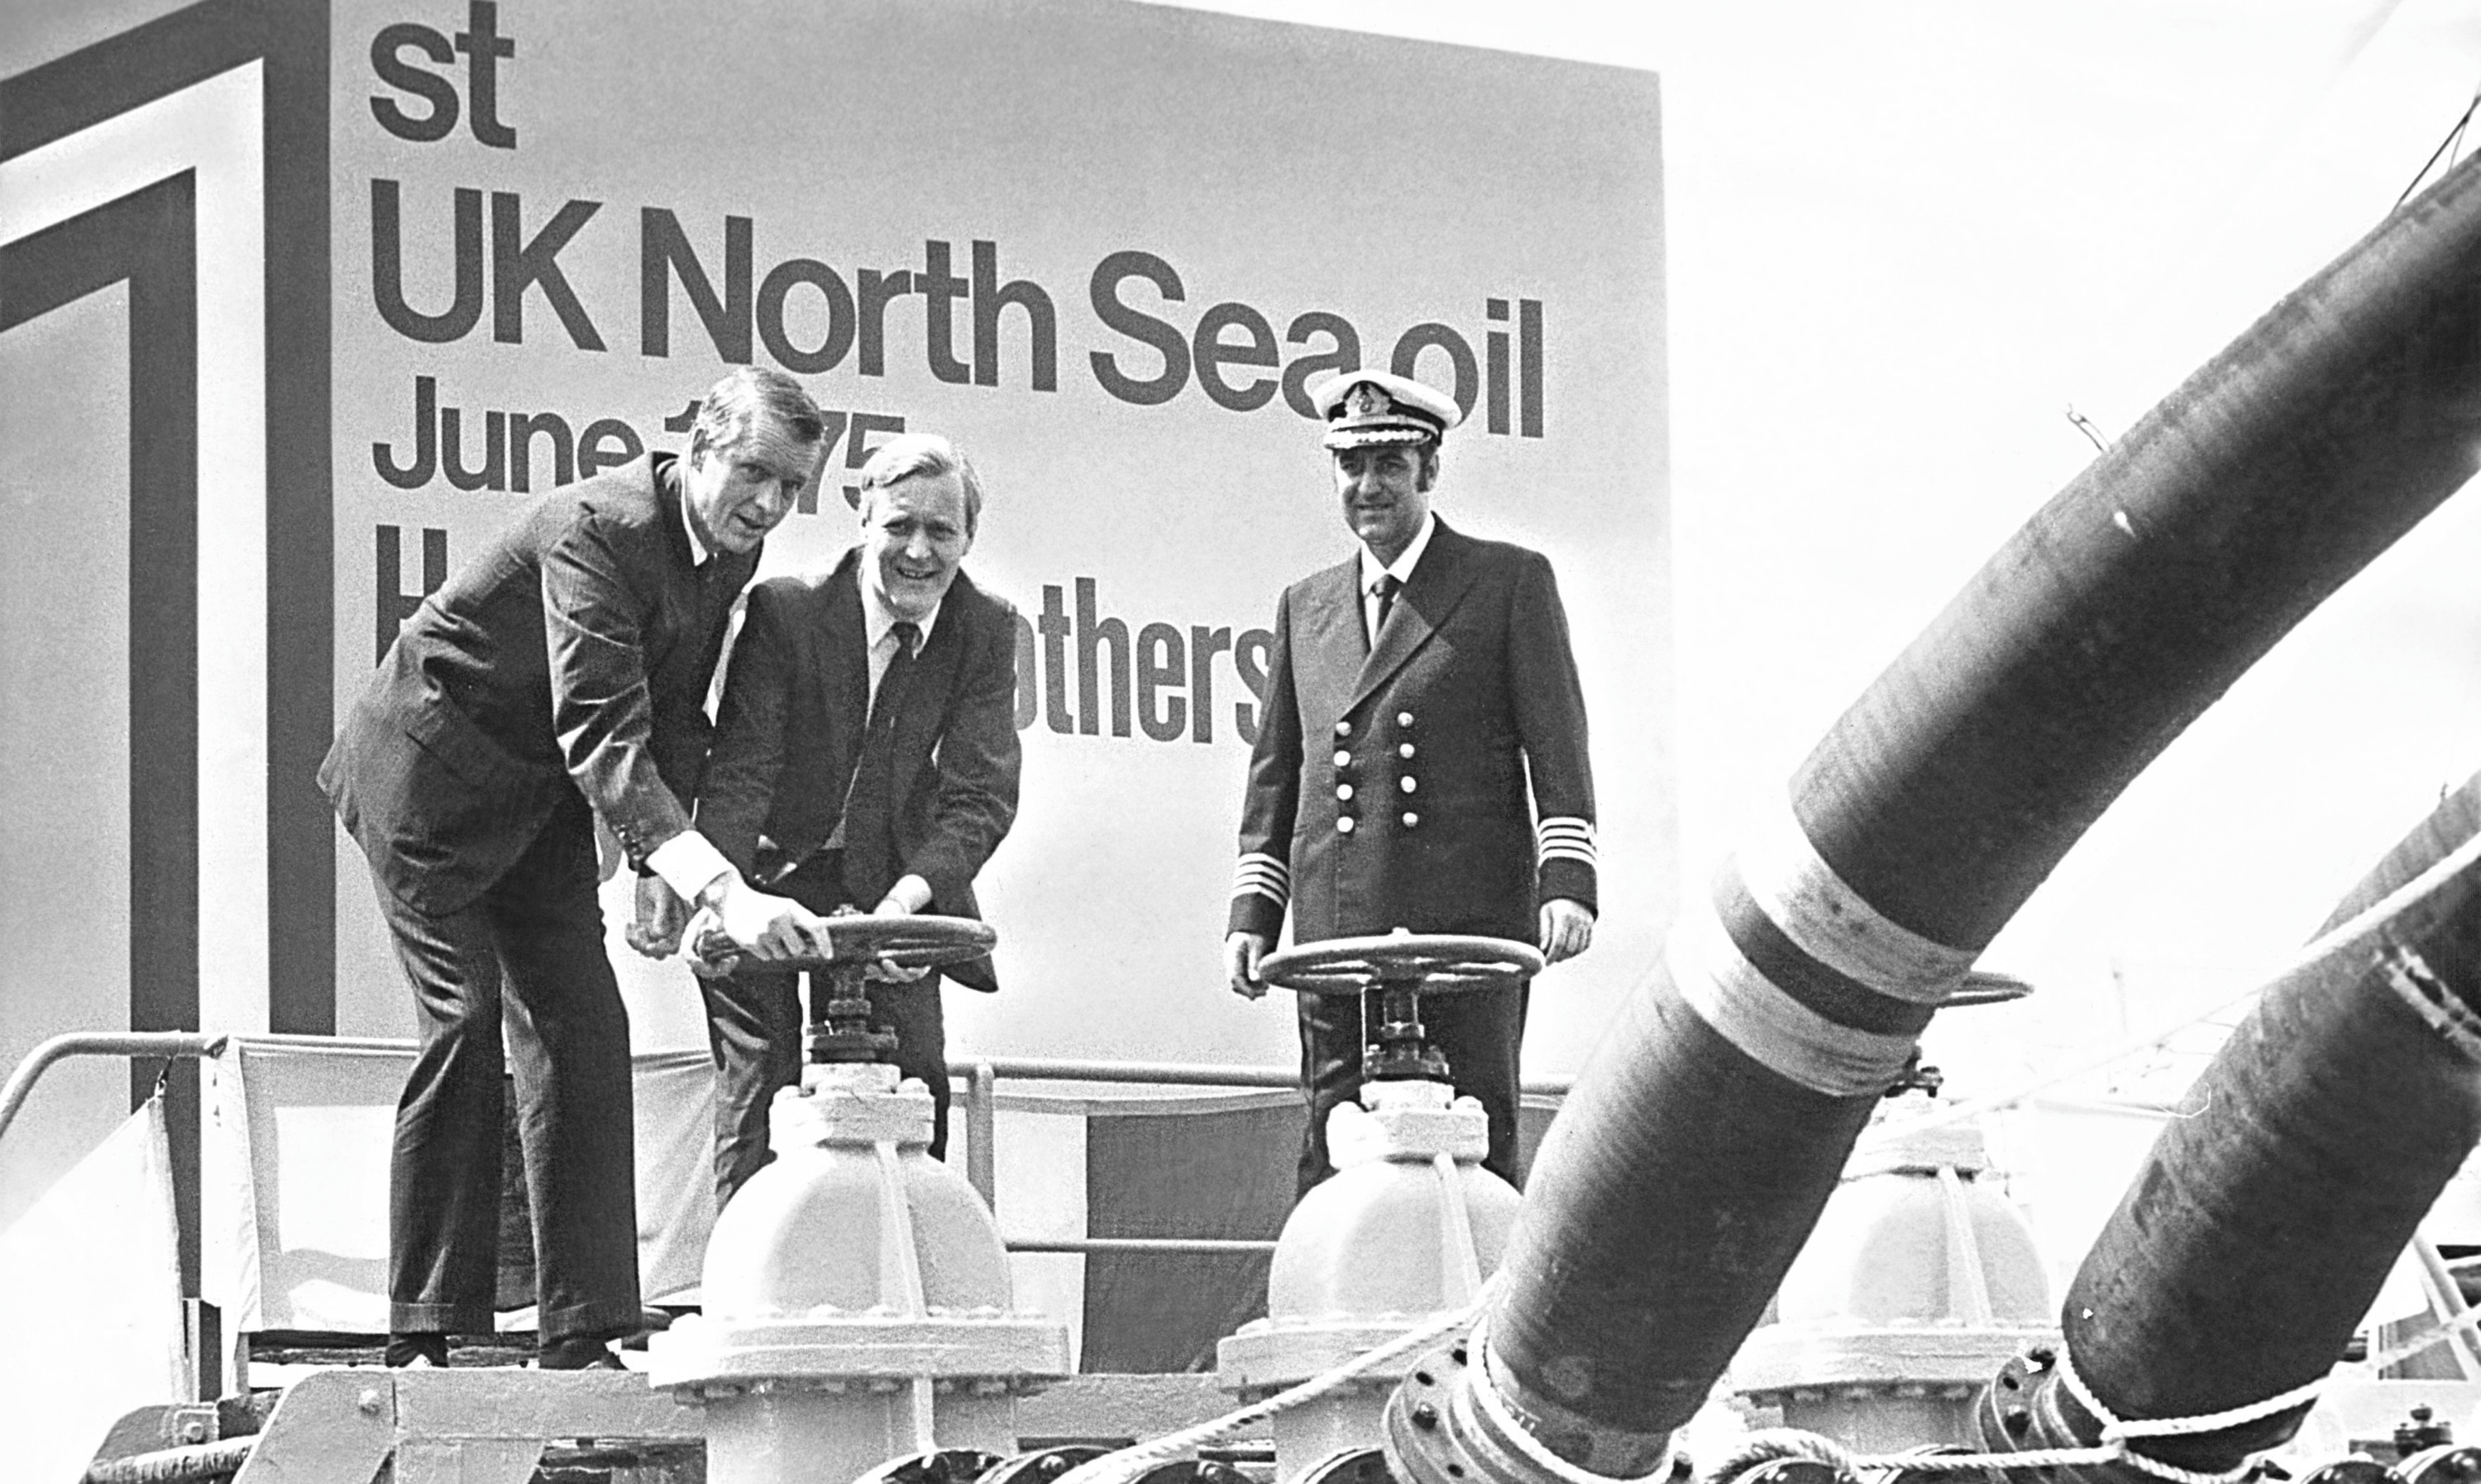 Former Energy Secretary Tony Benn opens a valve to release the firstoil from the Argyll field in the North Sea.